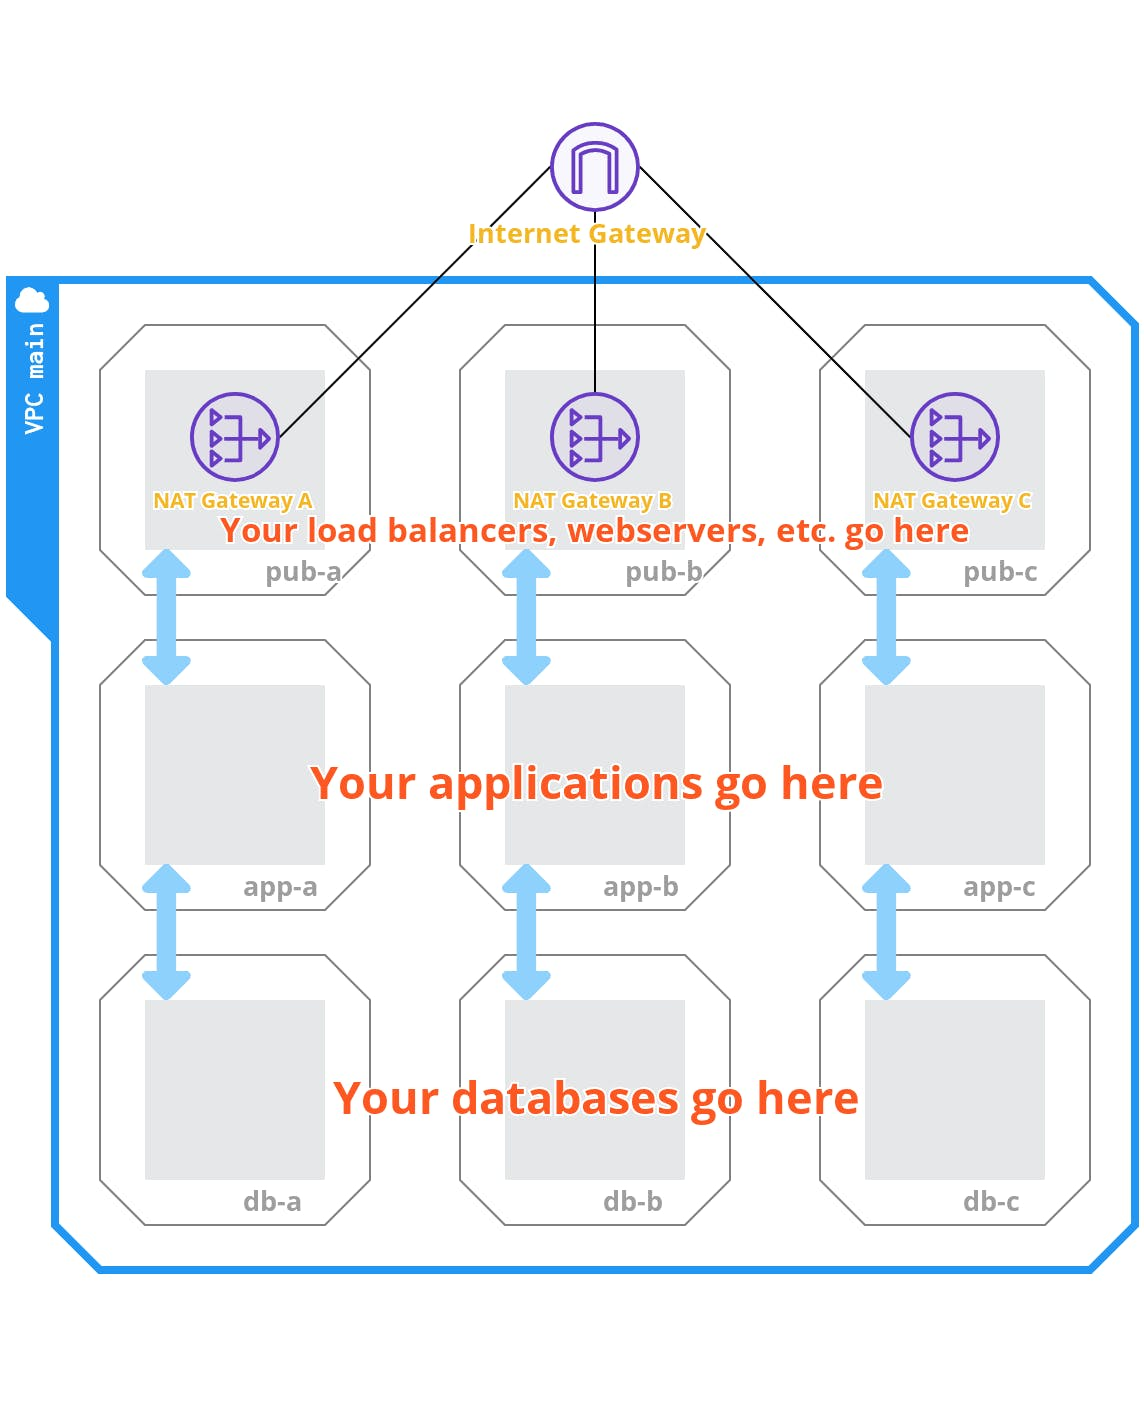 A table showing load balancers, webservers, applications, and databases